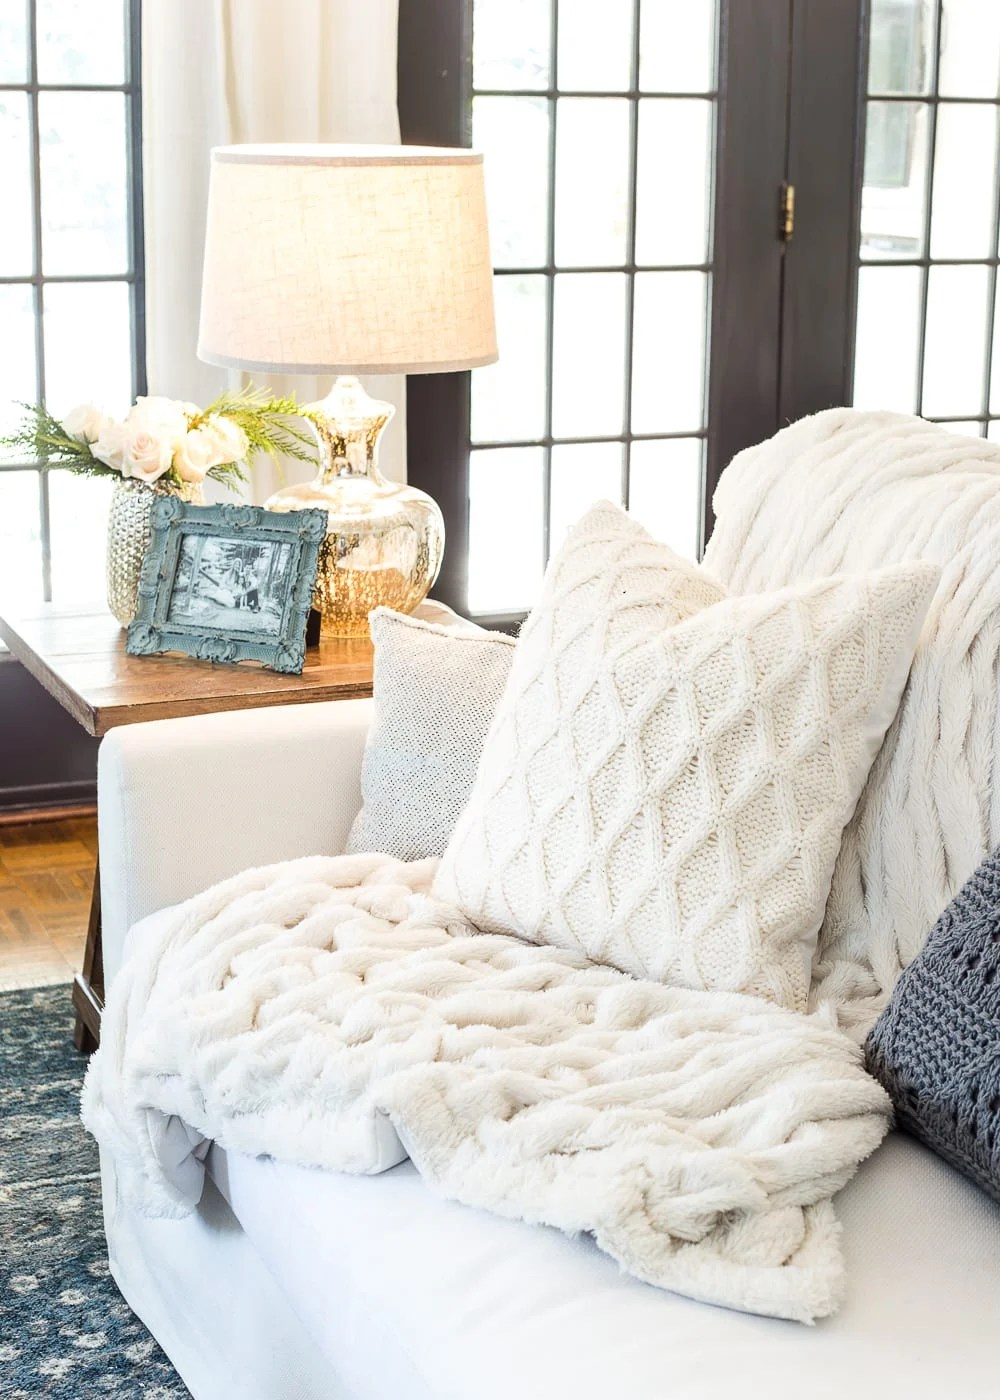 6 Ways to Make Your Home Feel Cozy After Christmas | blesserhouse.com - 6 surefire ways to decorate your home feel cozy after Christmas during the cold winter months using proven methods from the Hygge lifestyle. #winterdecor #cozydecor #afterchristmas #hygge